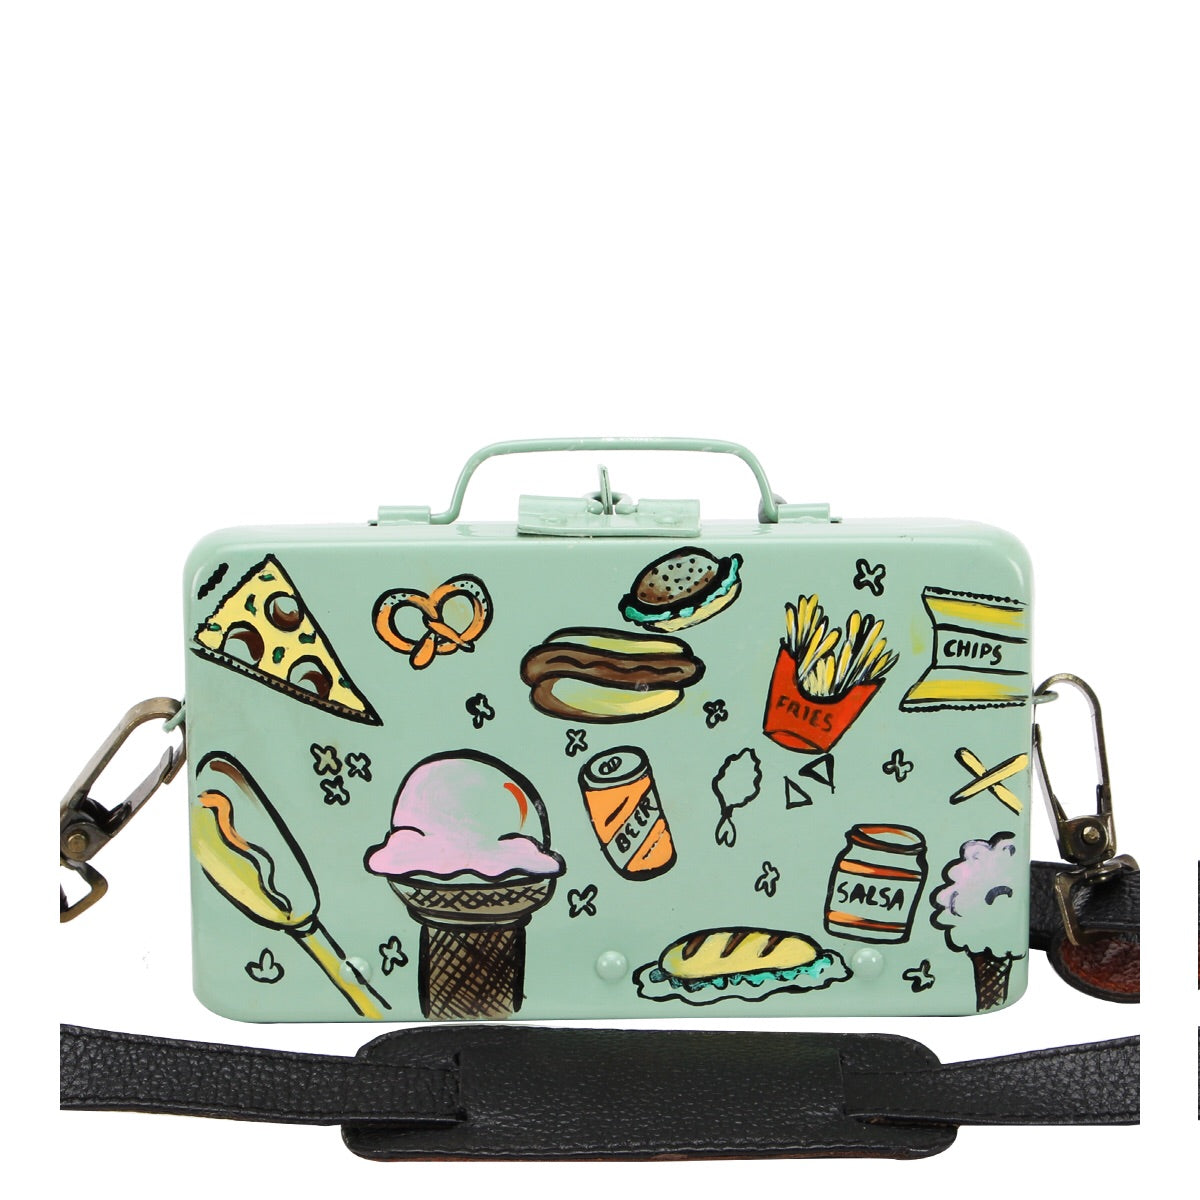 Food Lovers Sling - Mint Green